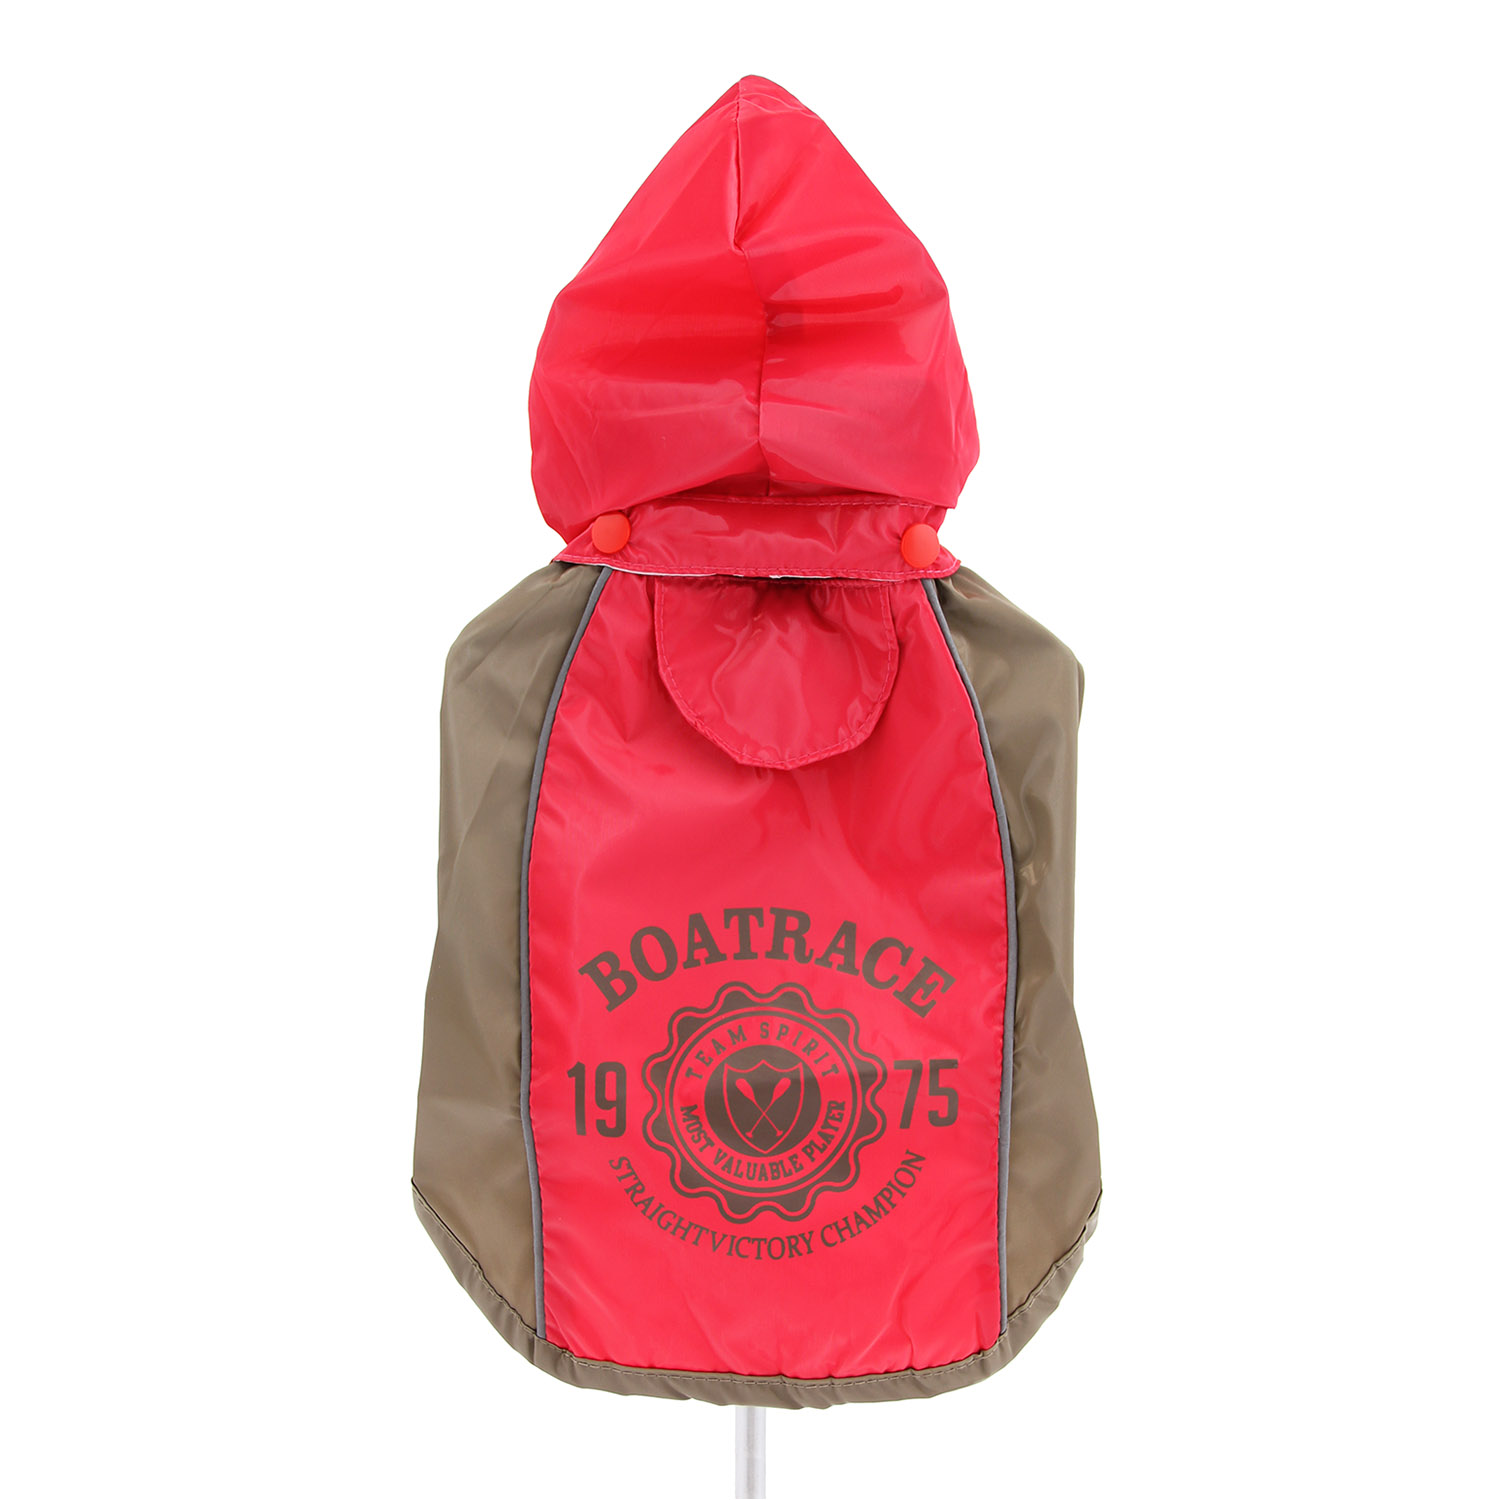 Dobaz Boat Race Dog Raincoat - Coral Pink